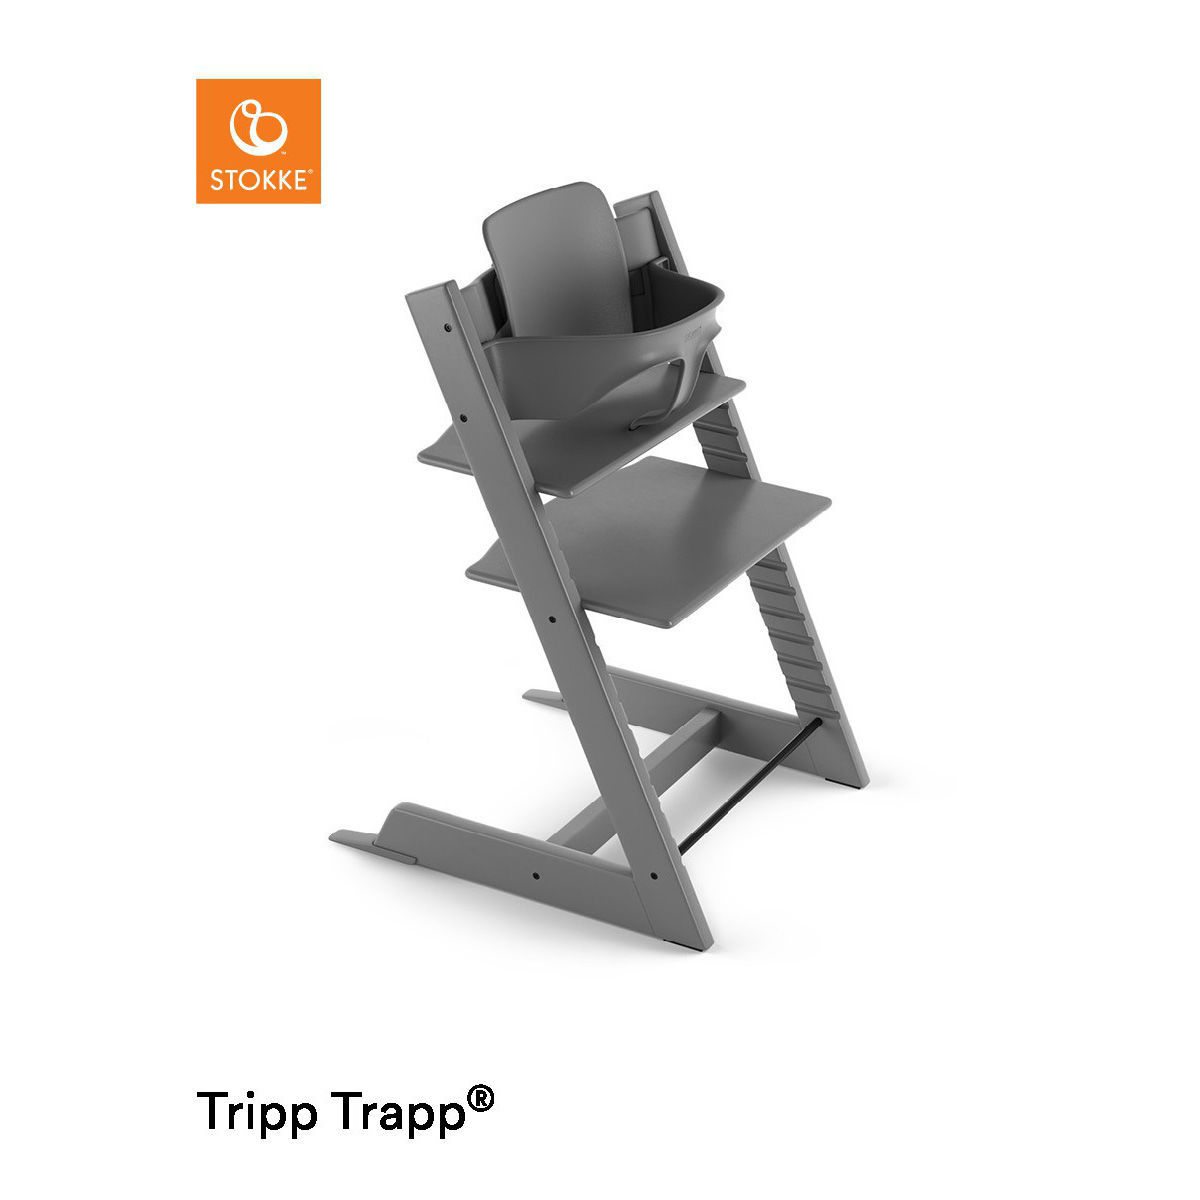 stokke hochstuhl tripp trapp storm grey mit babyset. Black Bedroom Furniture Sets. Home Design Ideas